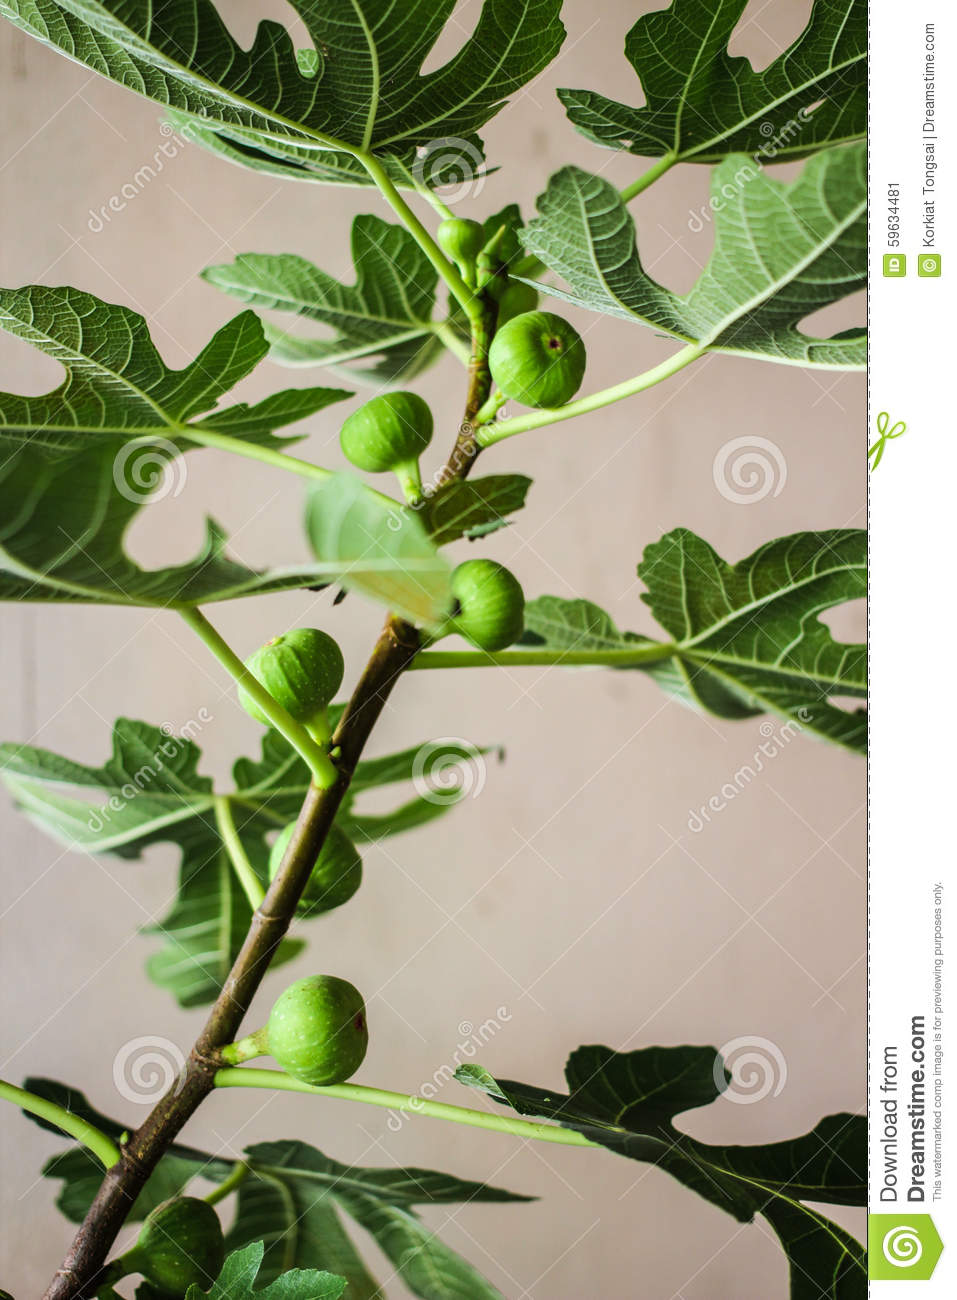 how to grow a fig tree from a branch